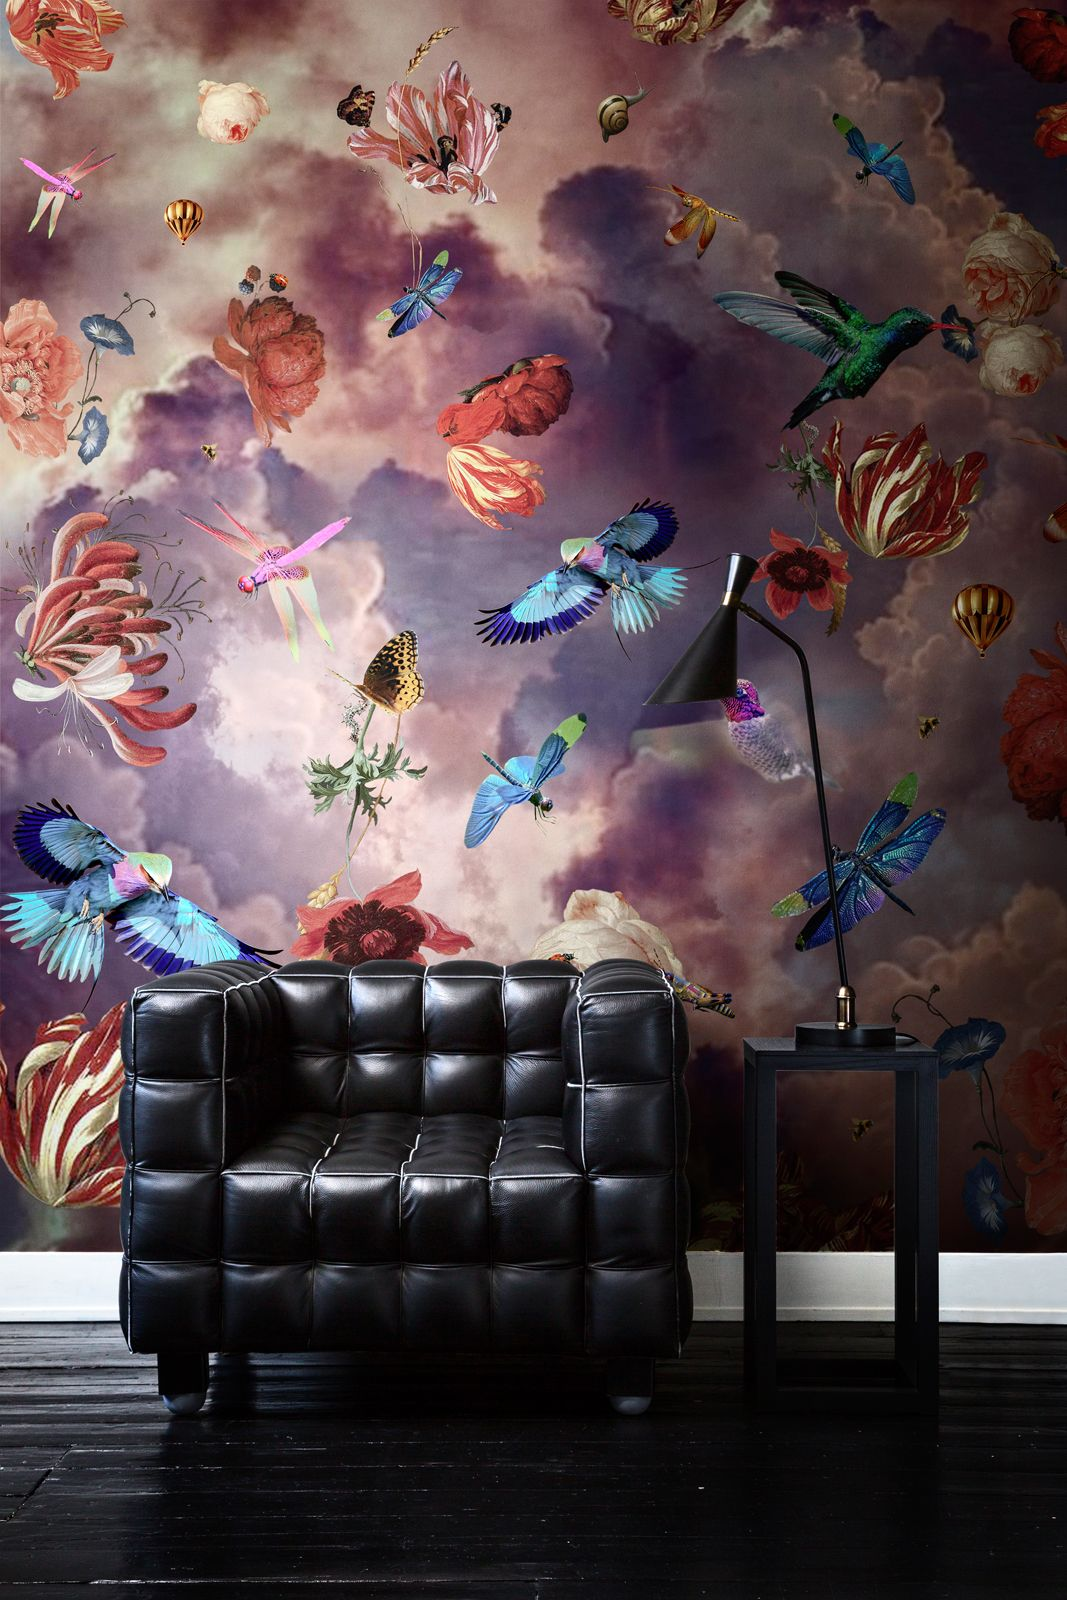 Fotobehang / Digital Wallpaper collection Dutch Masters by Katarina Stupavska - BN Wallcoverings